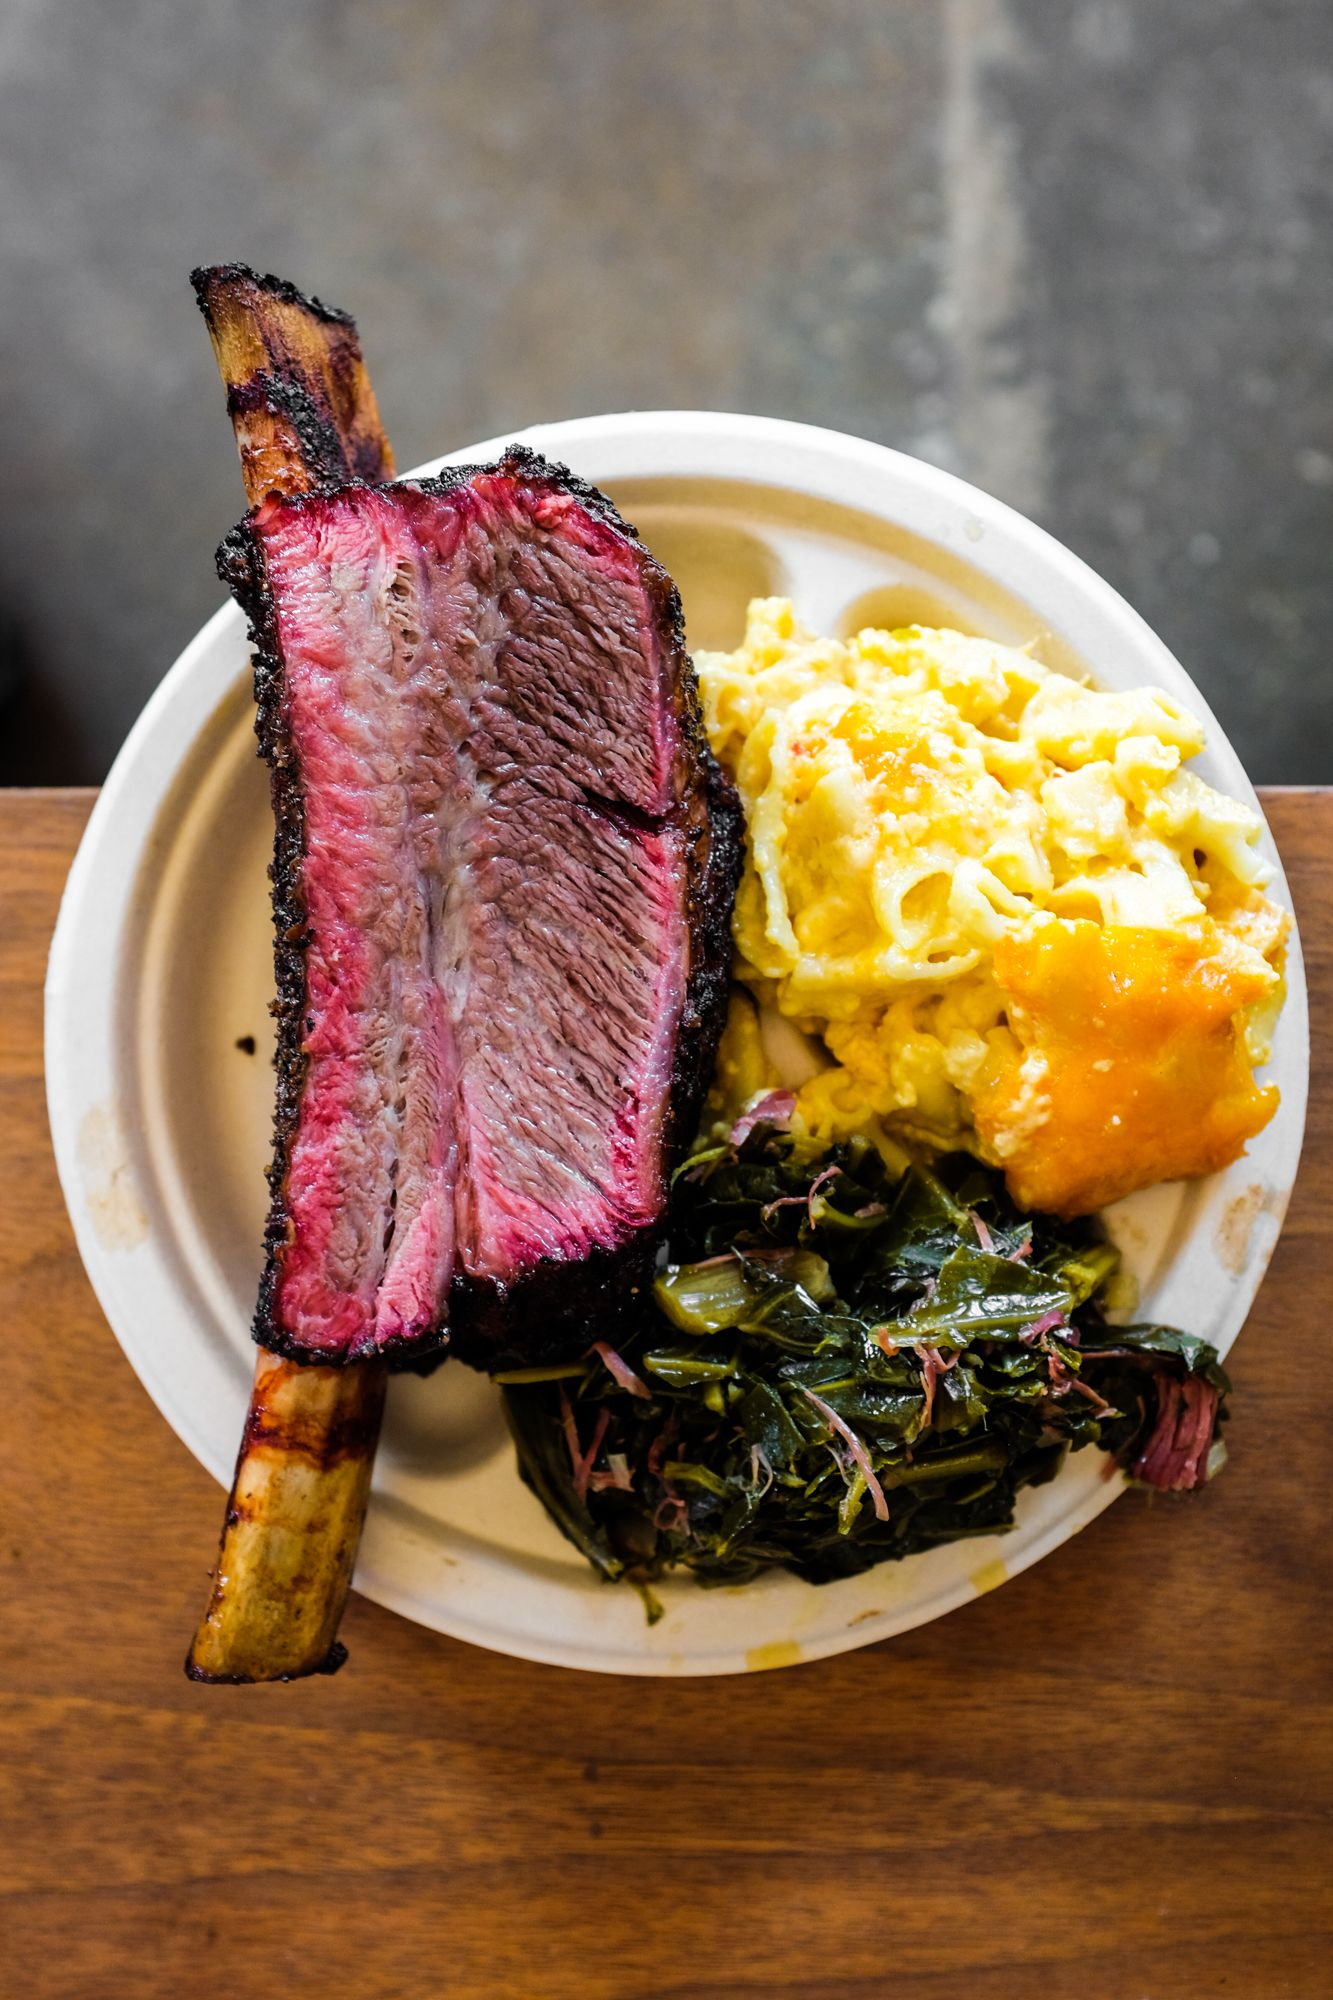 The Texas Style Beef Rib At Smokin Woods Bbq Cafe One Of 18 Best Restaurants In Oakland Run By James Woodard And His Family